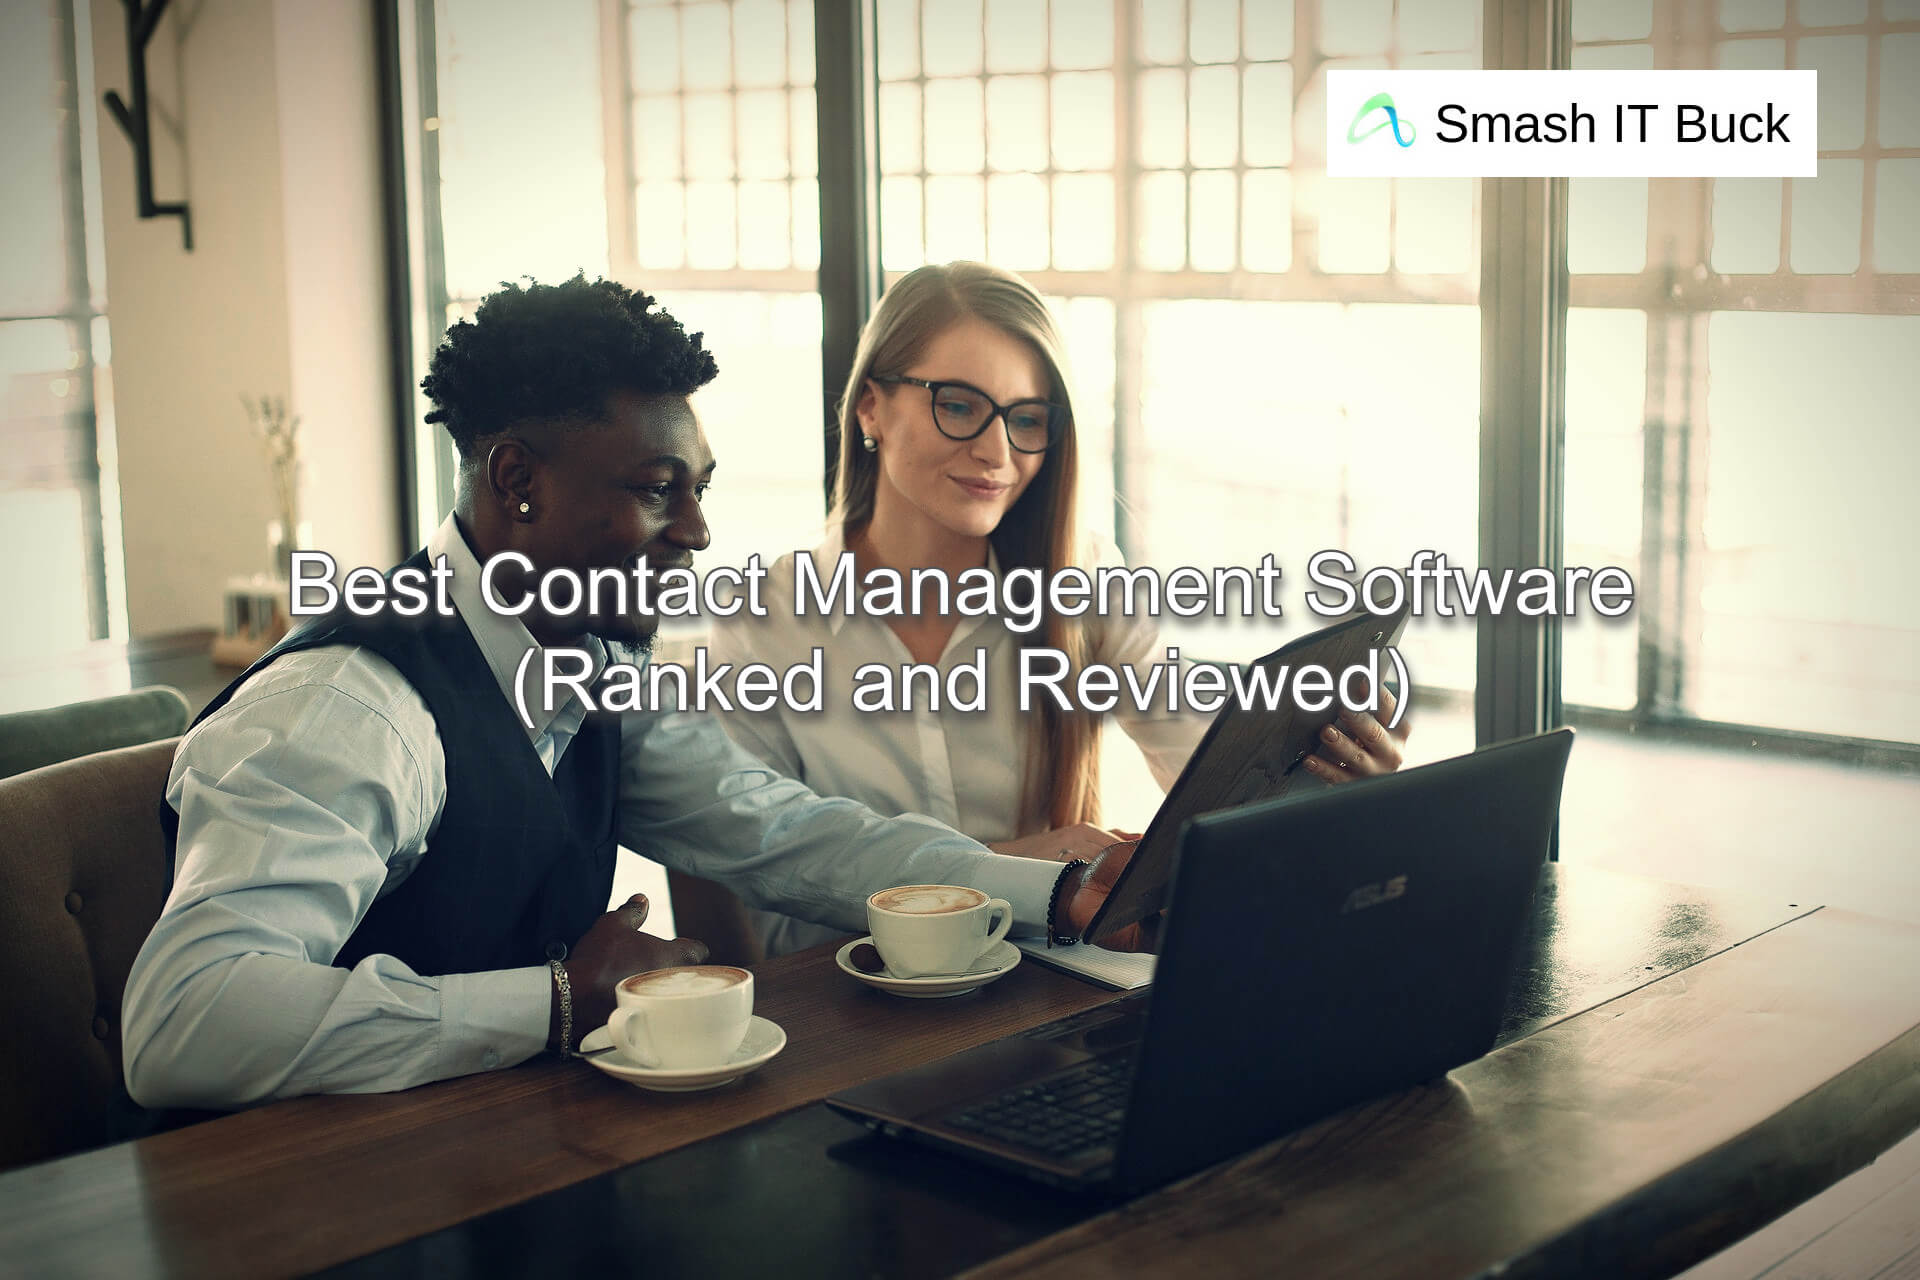 Best Contact Management Software to use in 2021